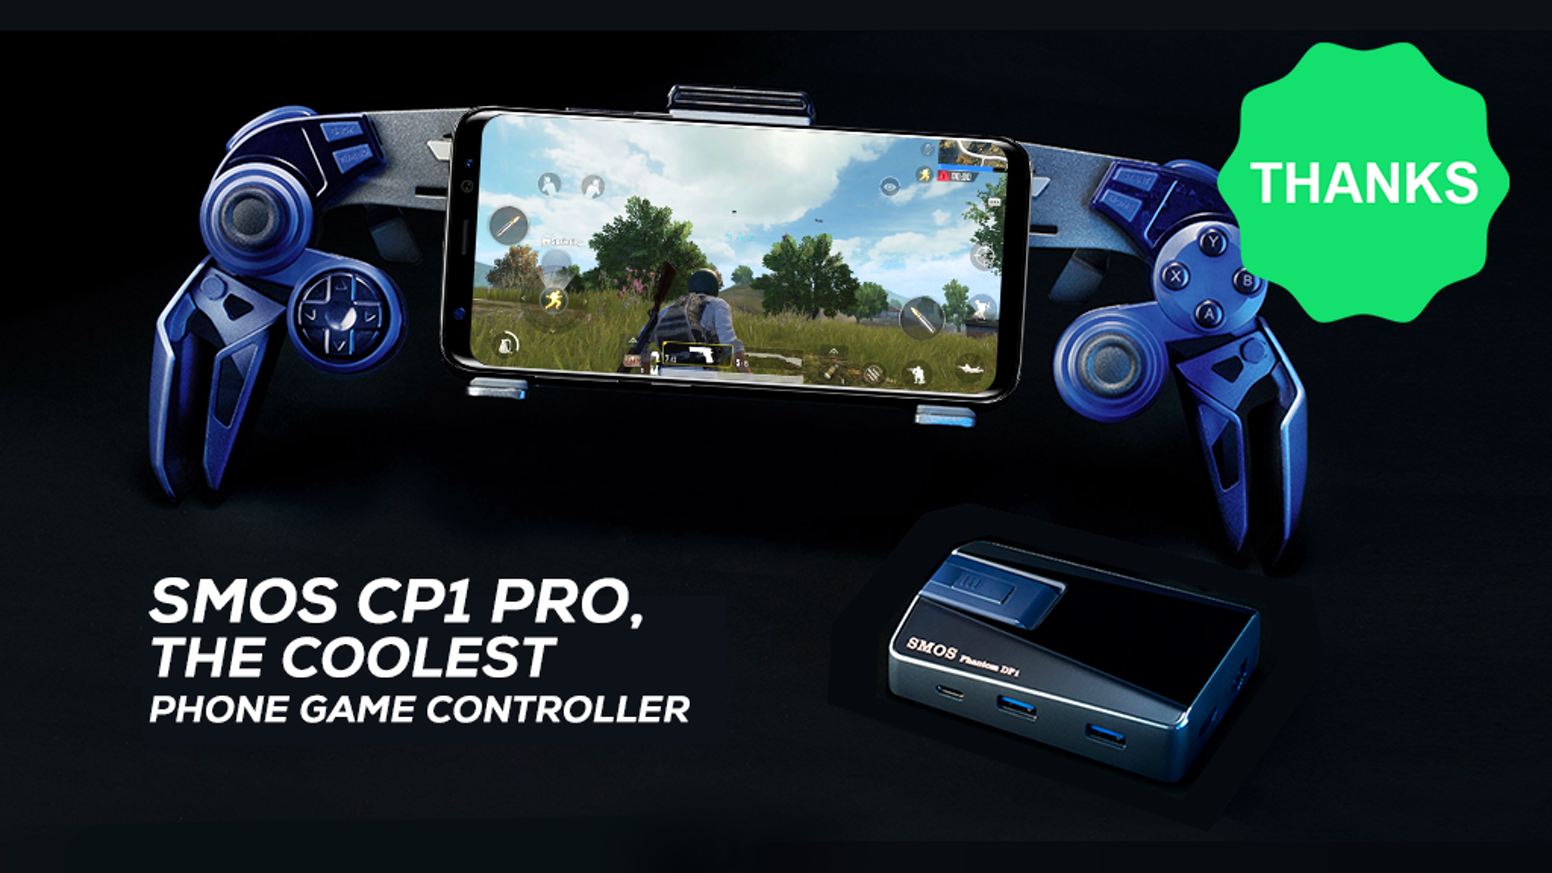 SMOS CP1 Pro, the Coolest Phone Game Controller by SMOS